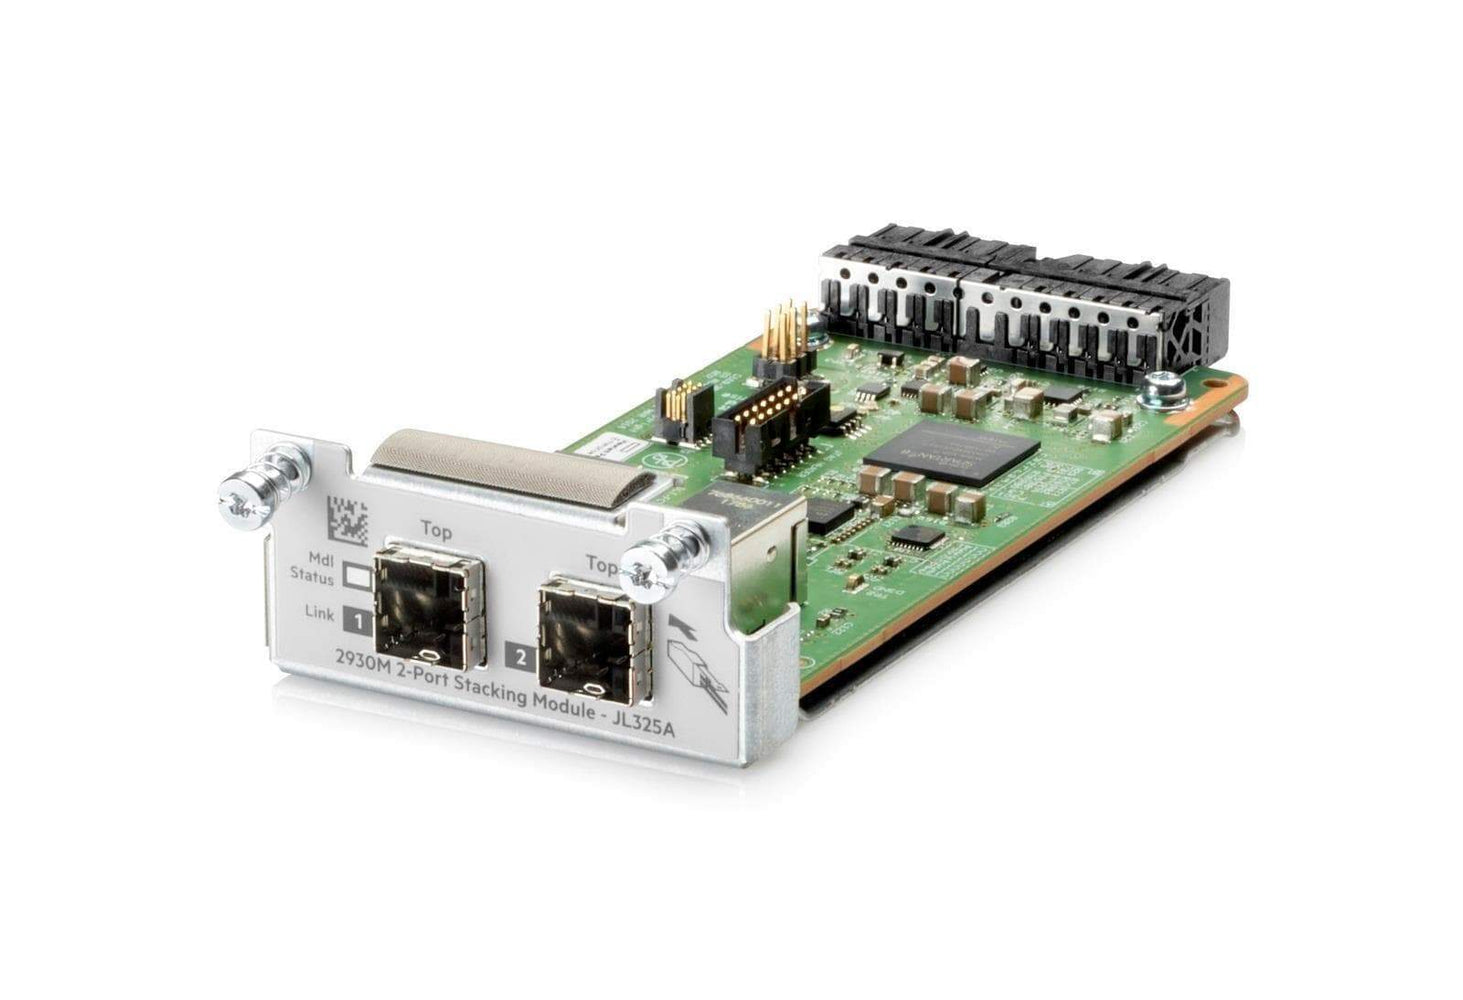 JL325A - Aruba 2930 2-port Stacking Module